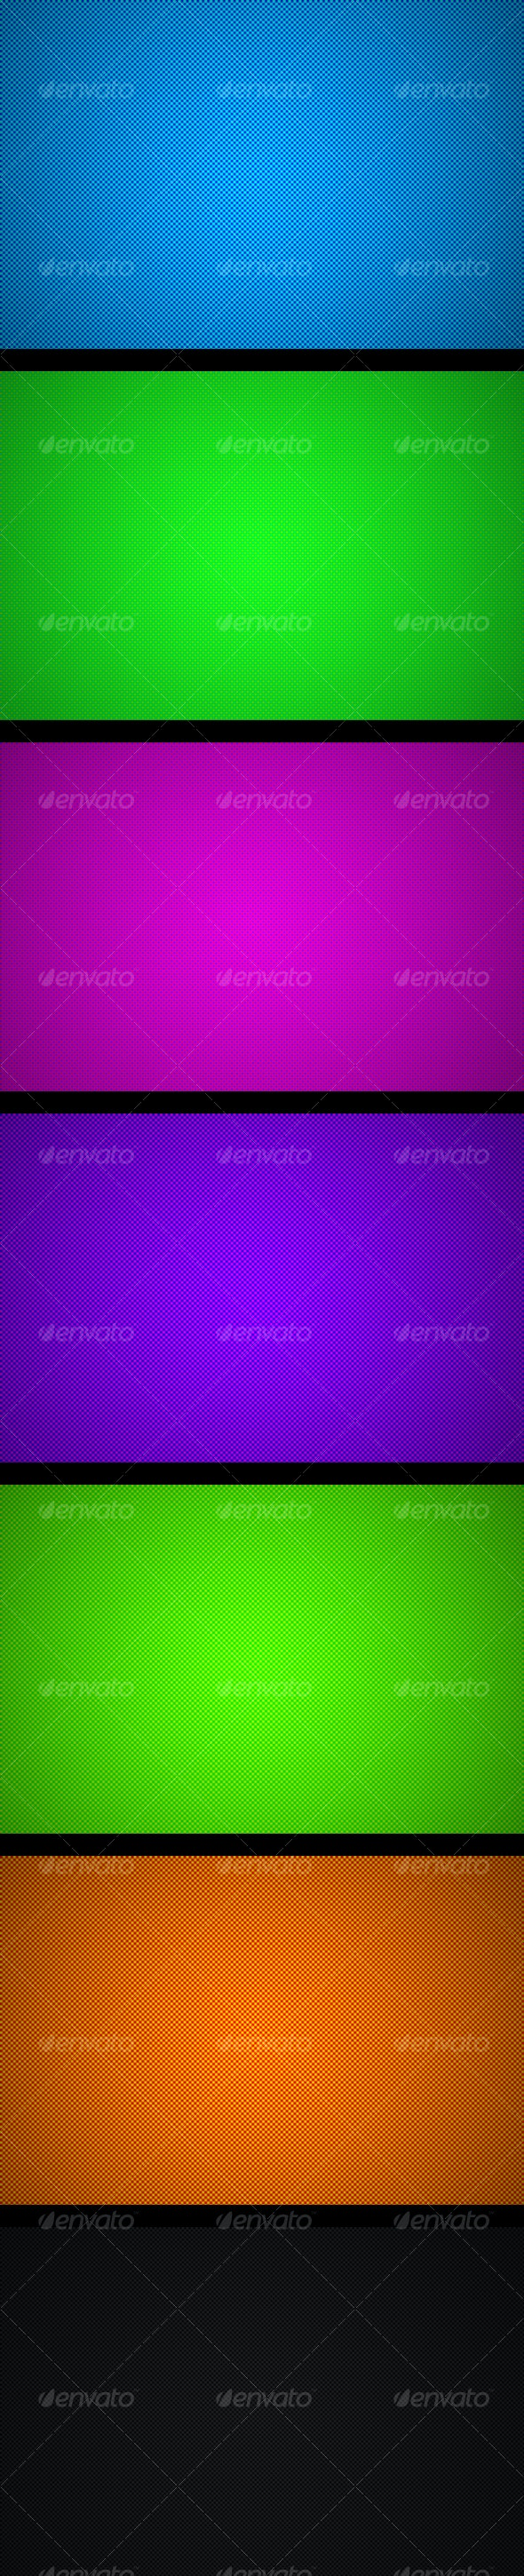 Seven color backgrounds - Abstract Backgrounds